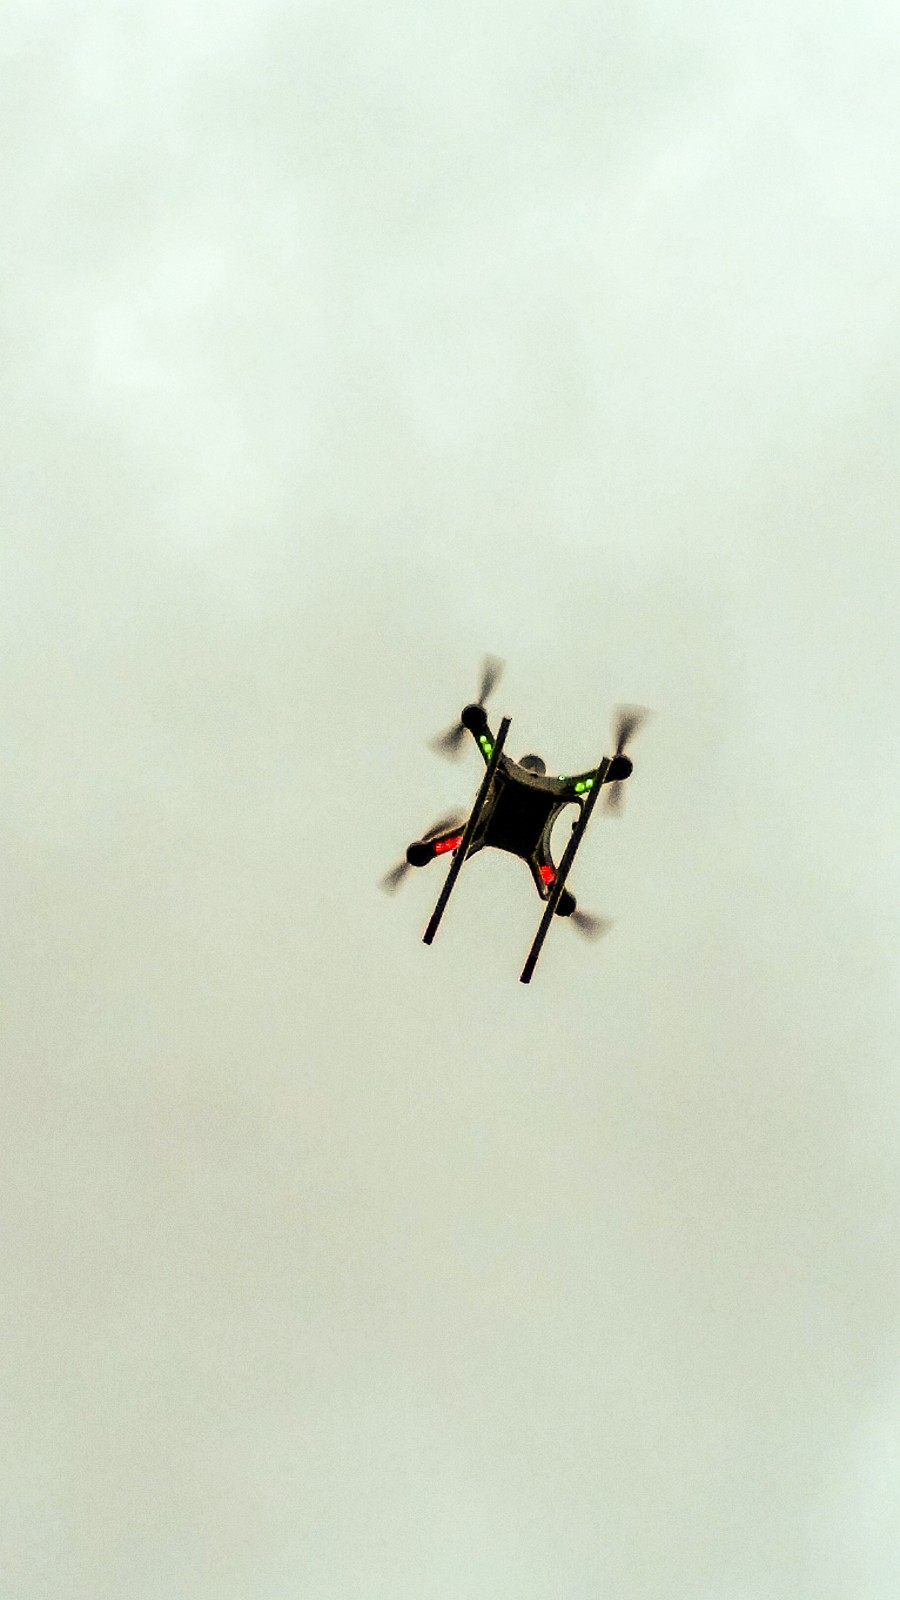 quadcopter-11-2